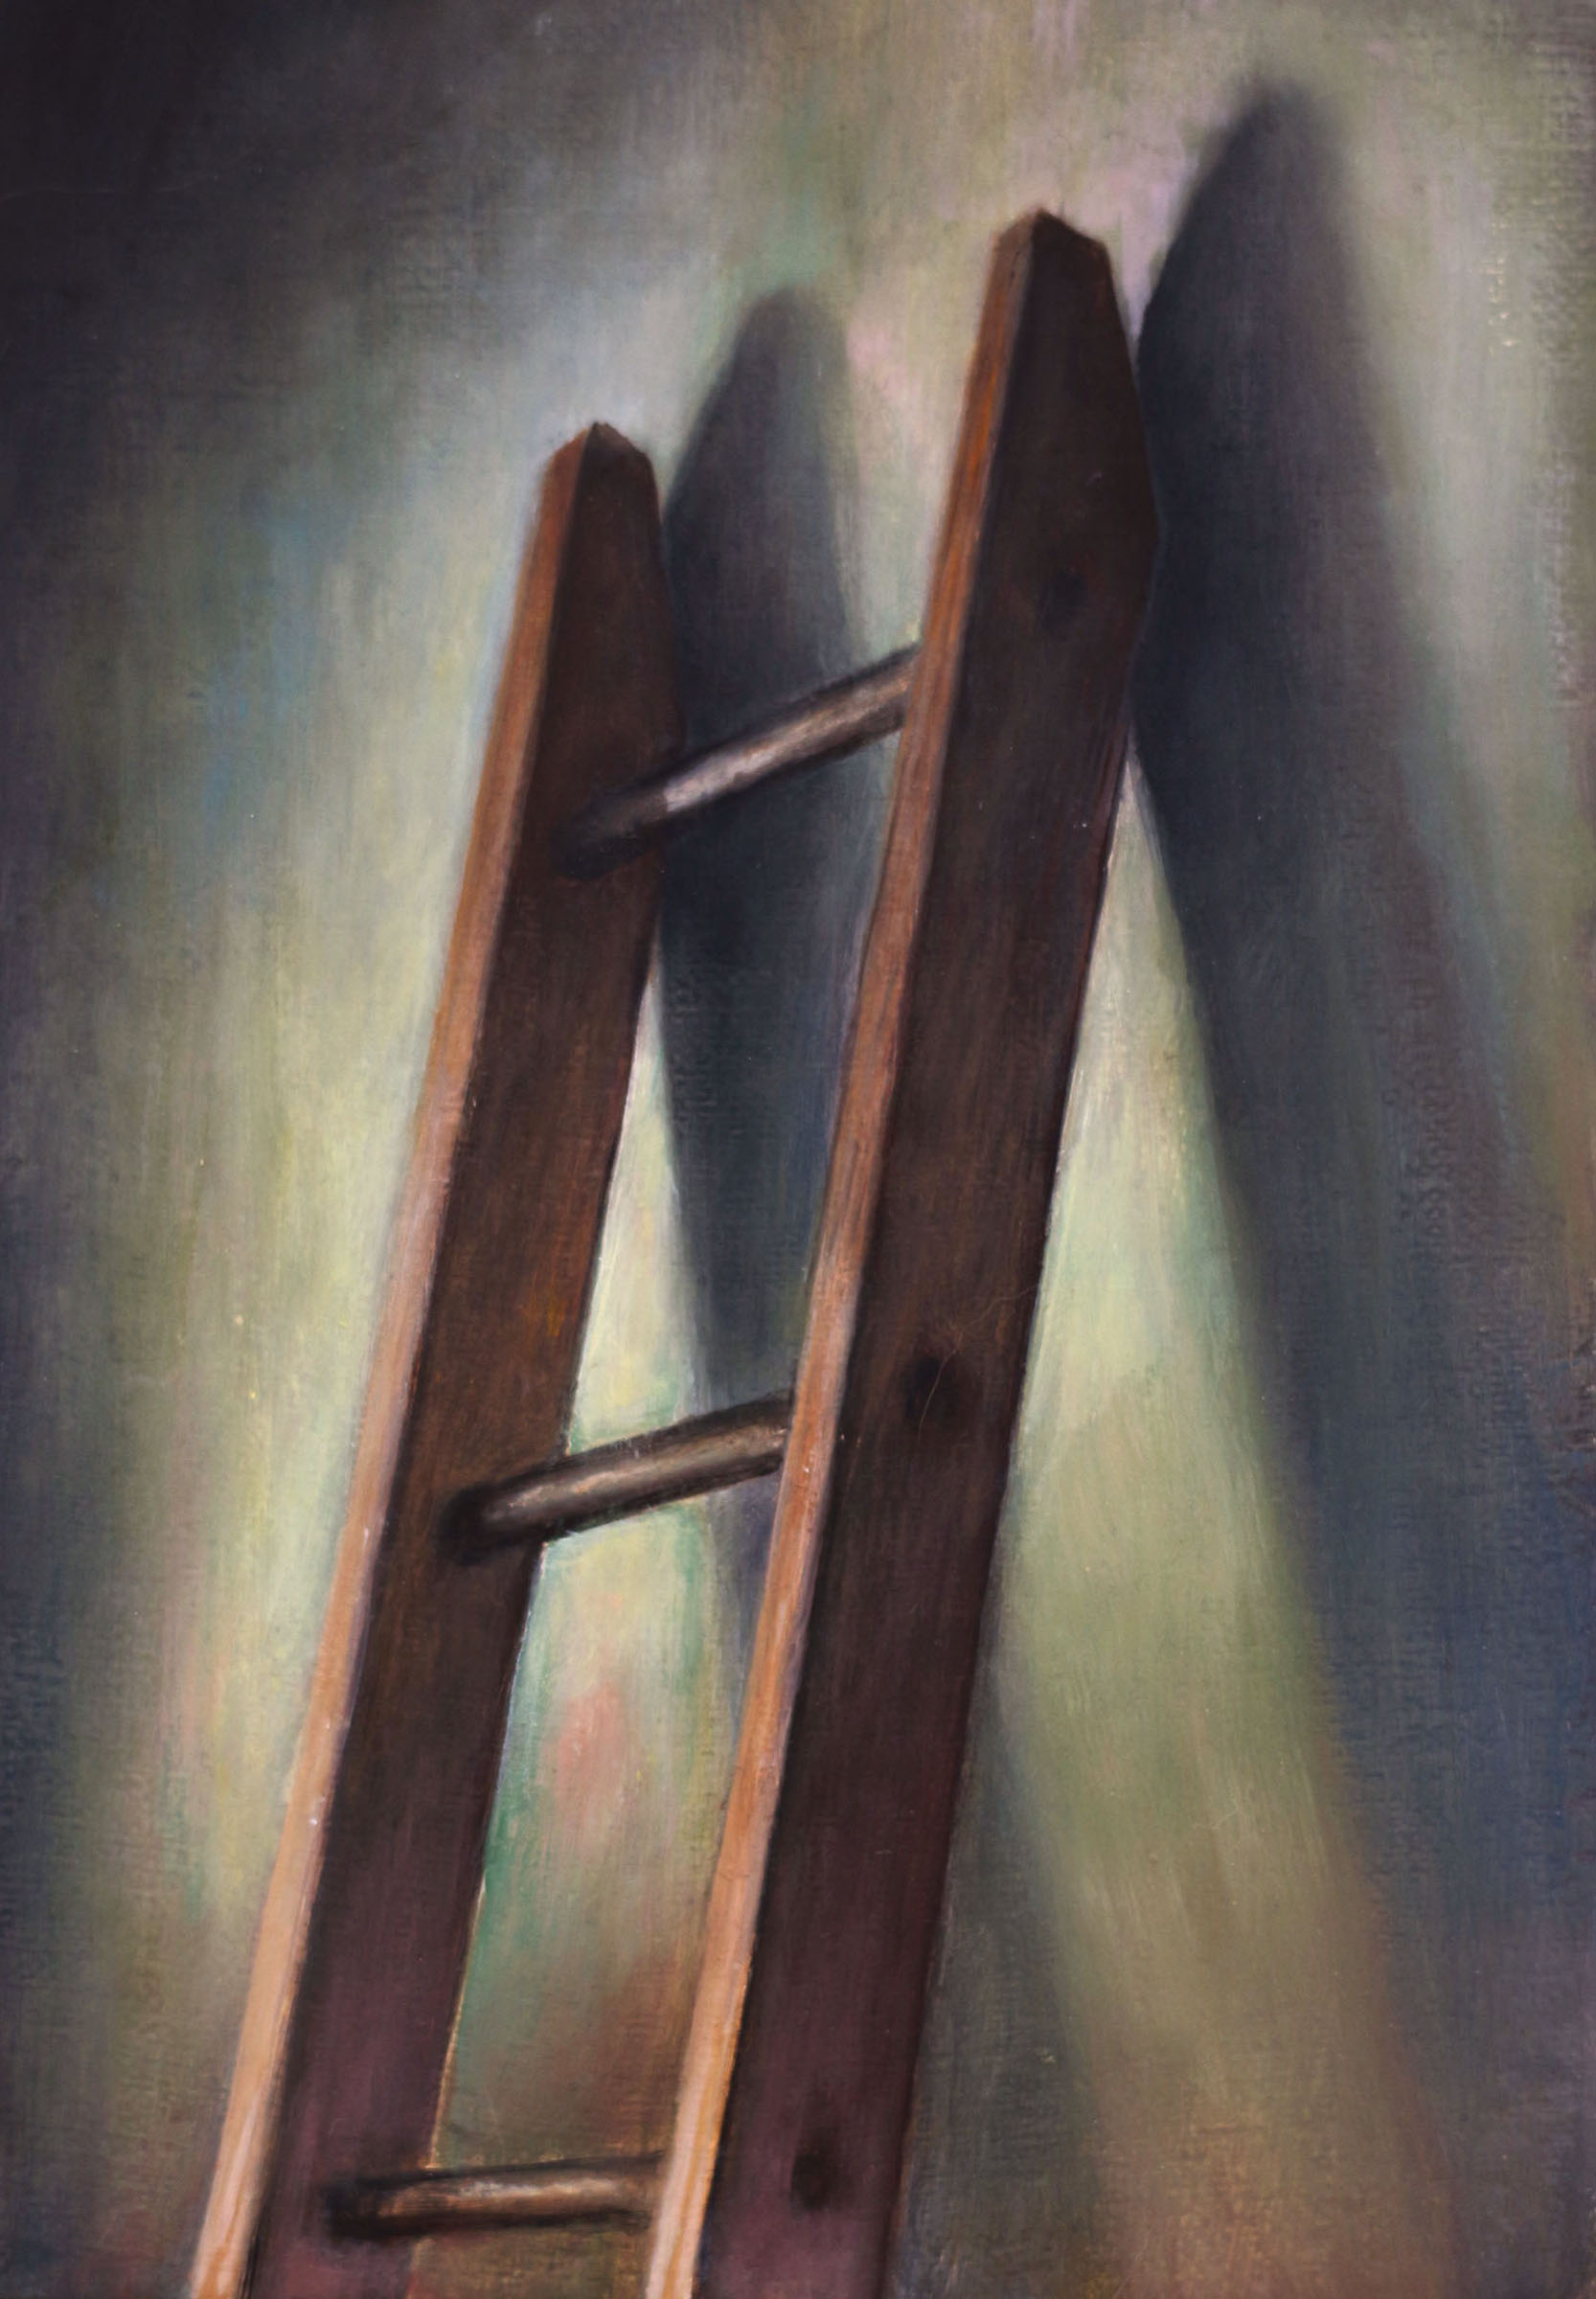 Ladder   2017  Oil on linen  7 x 5 inches